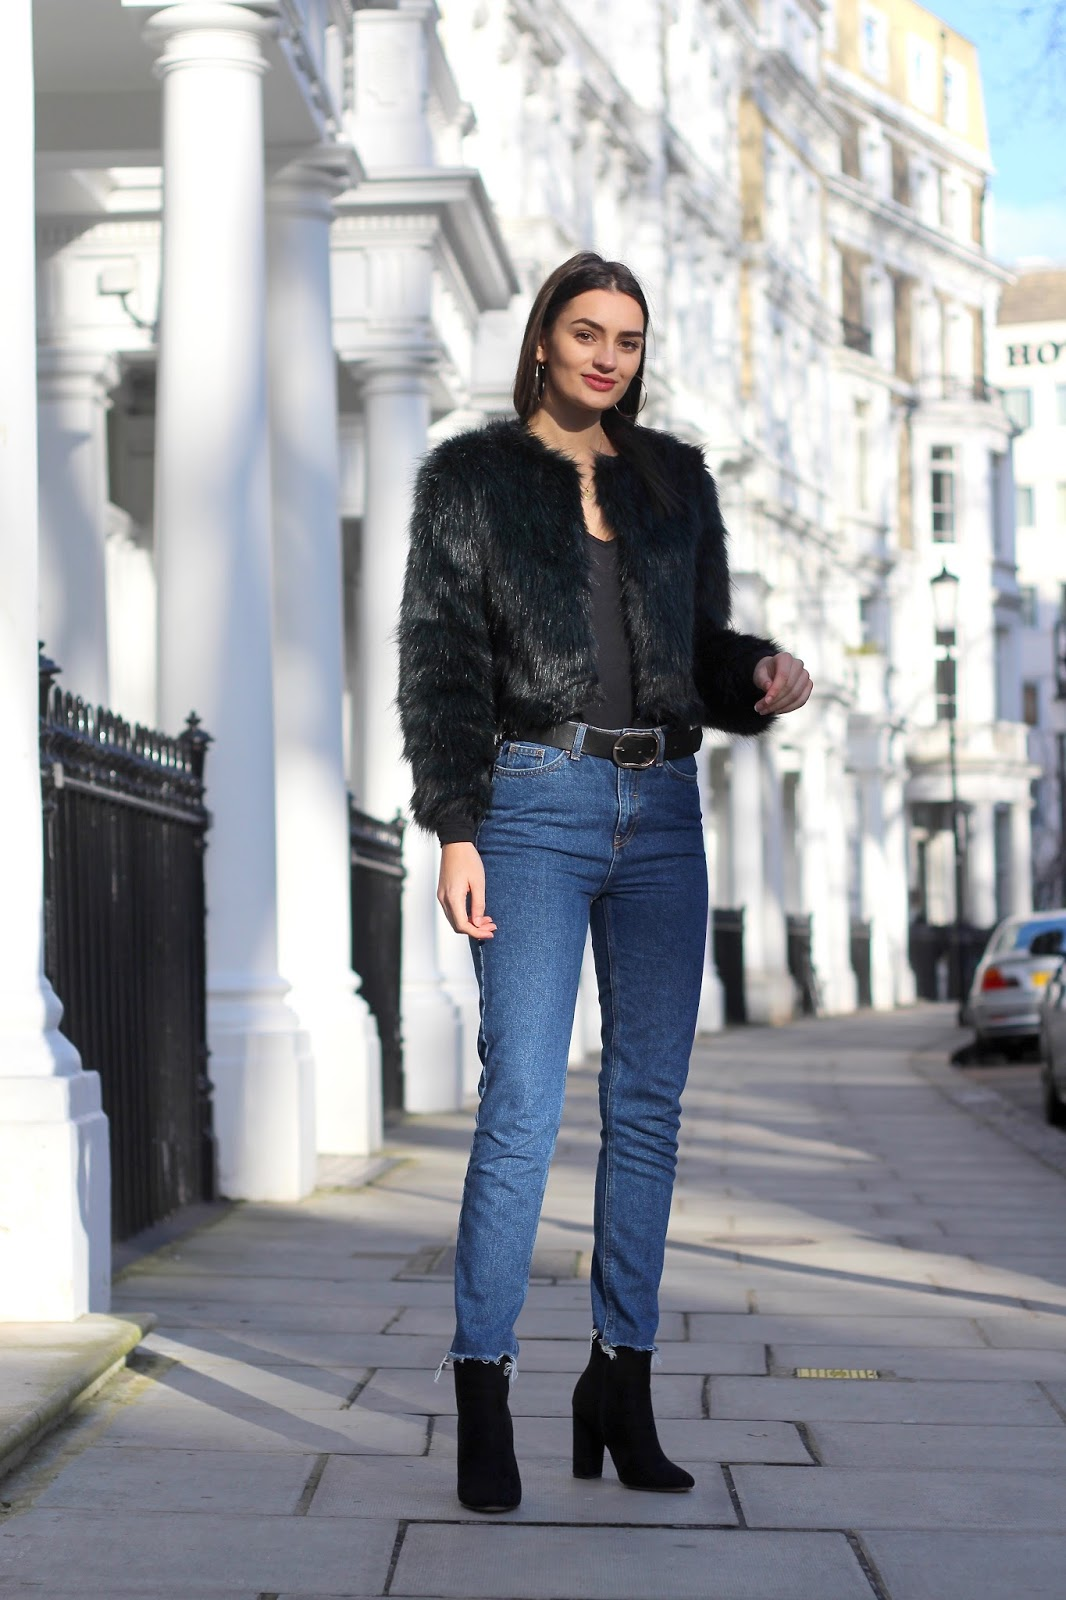 peexo winter style fashion london